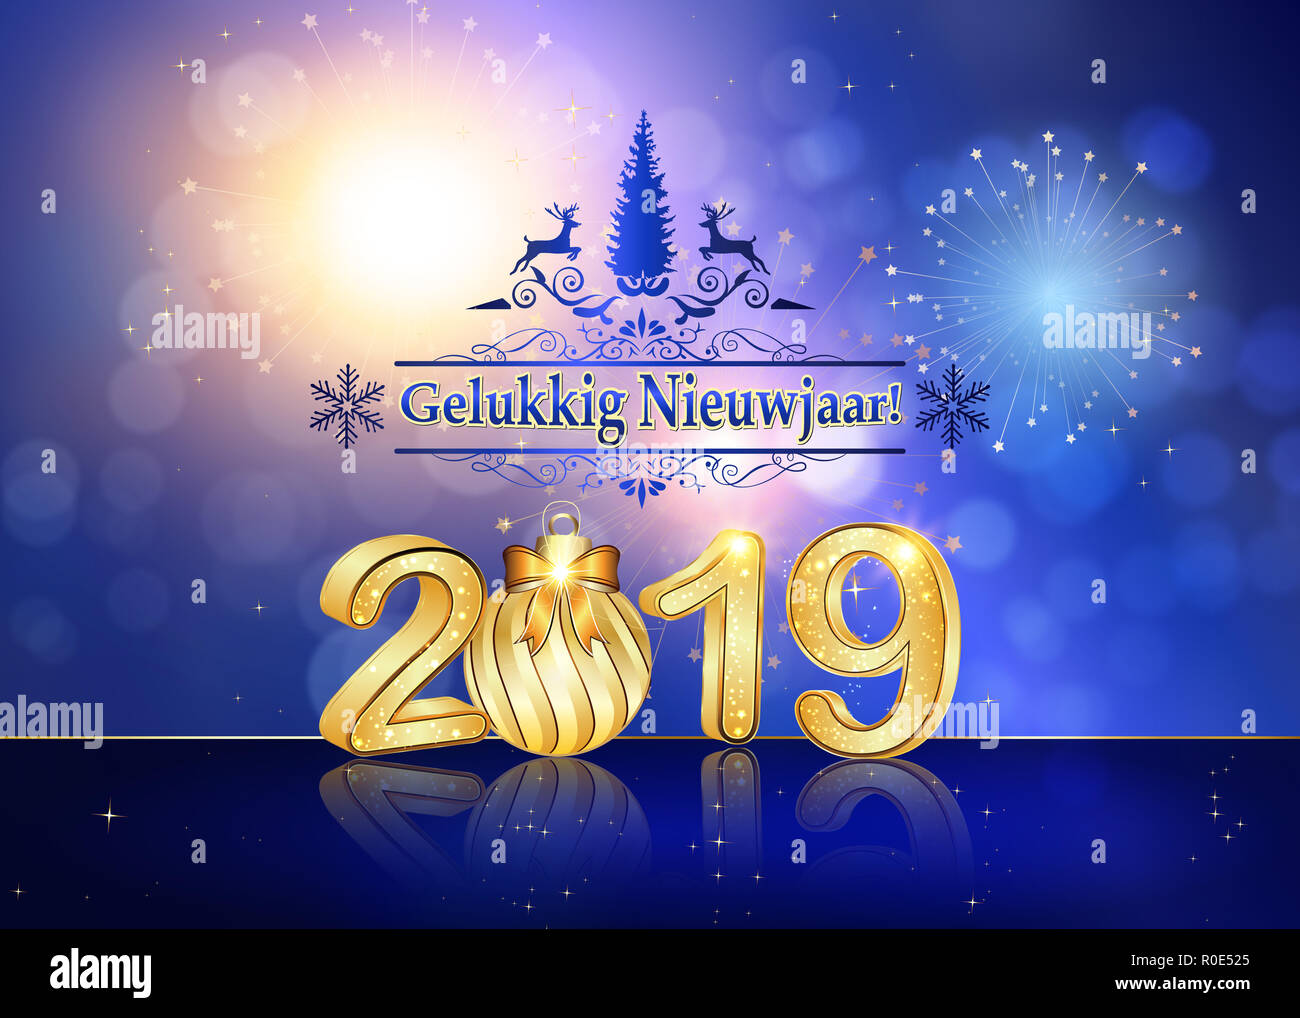 blue greeting card for the new year 2019 celebration the message is written in dutch text translation happy new year